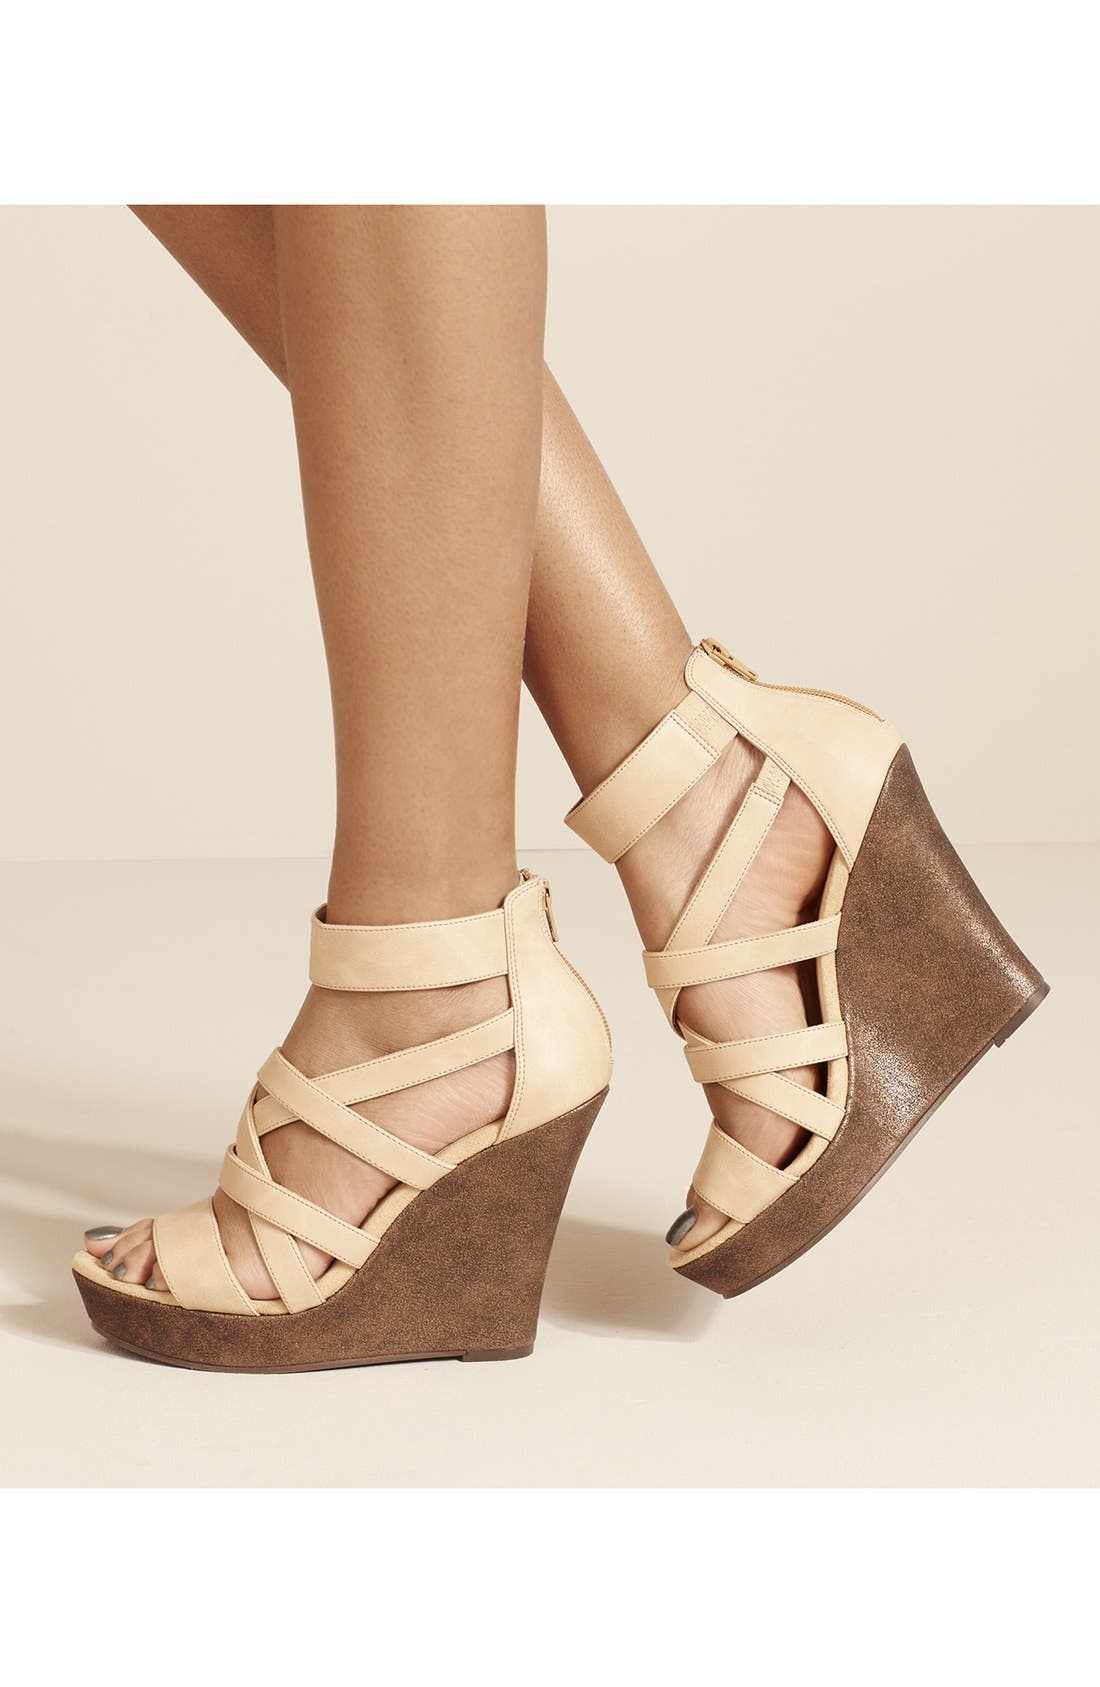 'Tell You What' Wedge Sandal,                             Main thumbnail 1, color,                             341